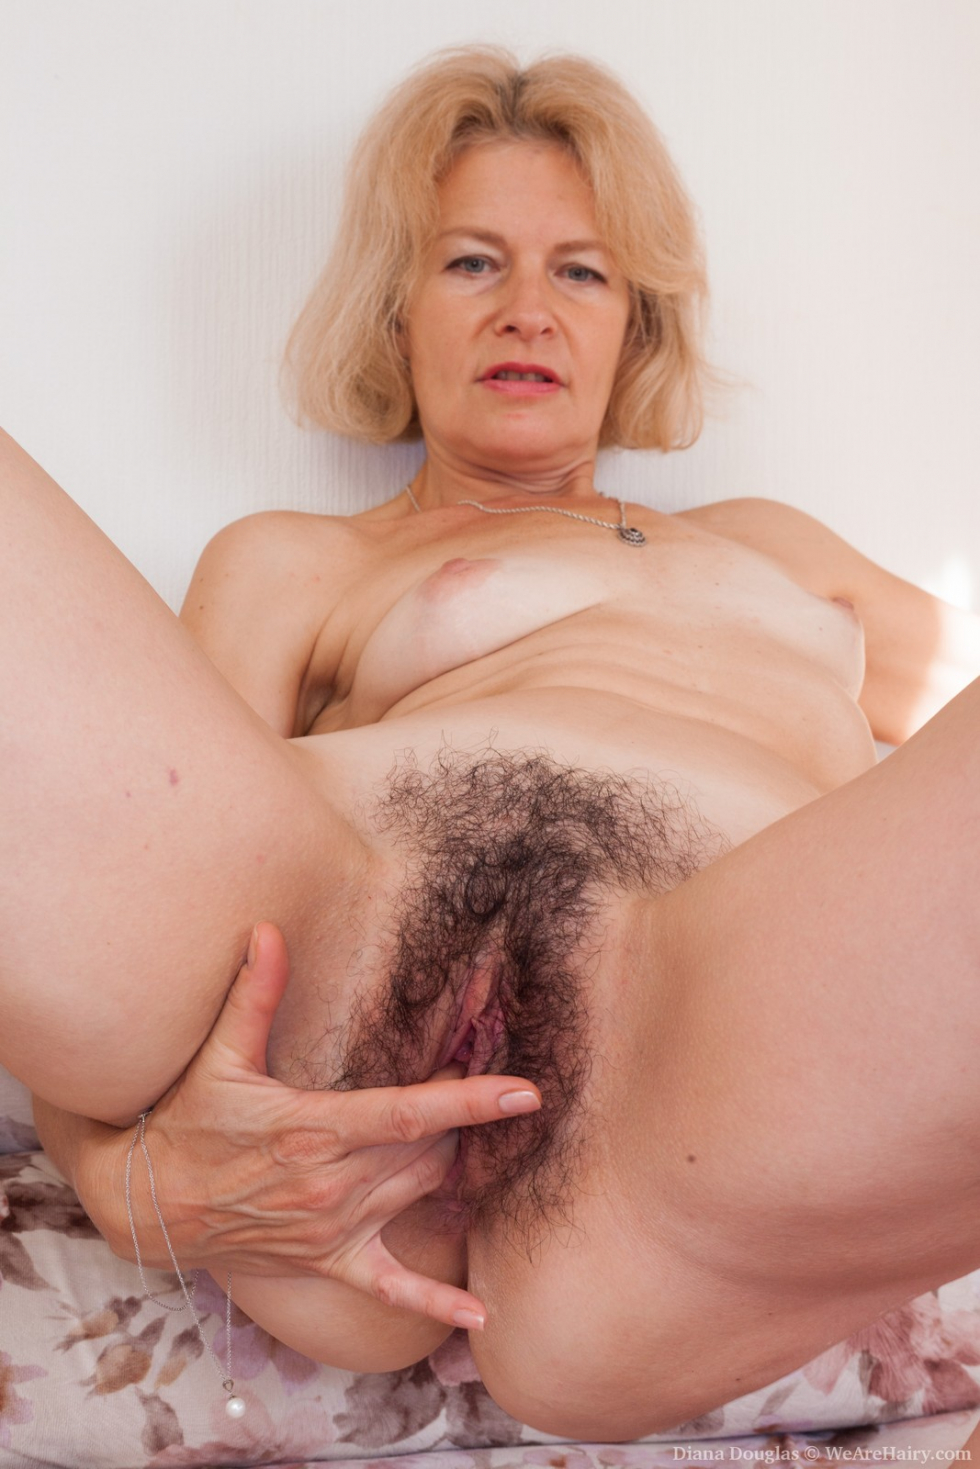 Hairy blonde mature woman nude opinion